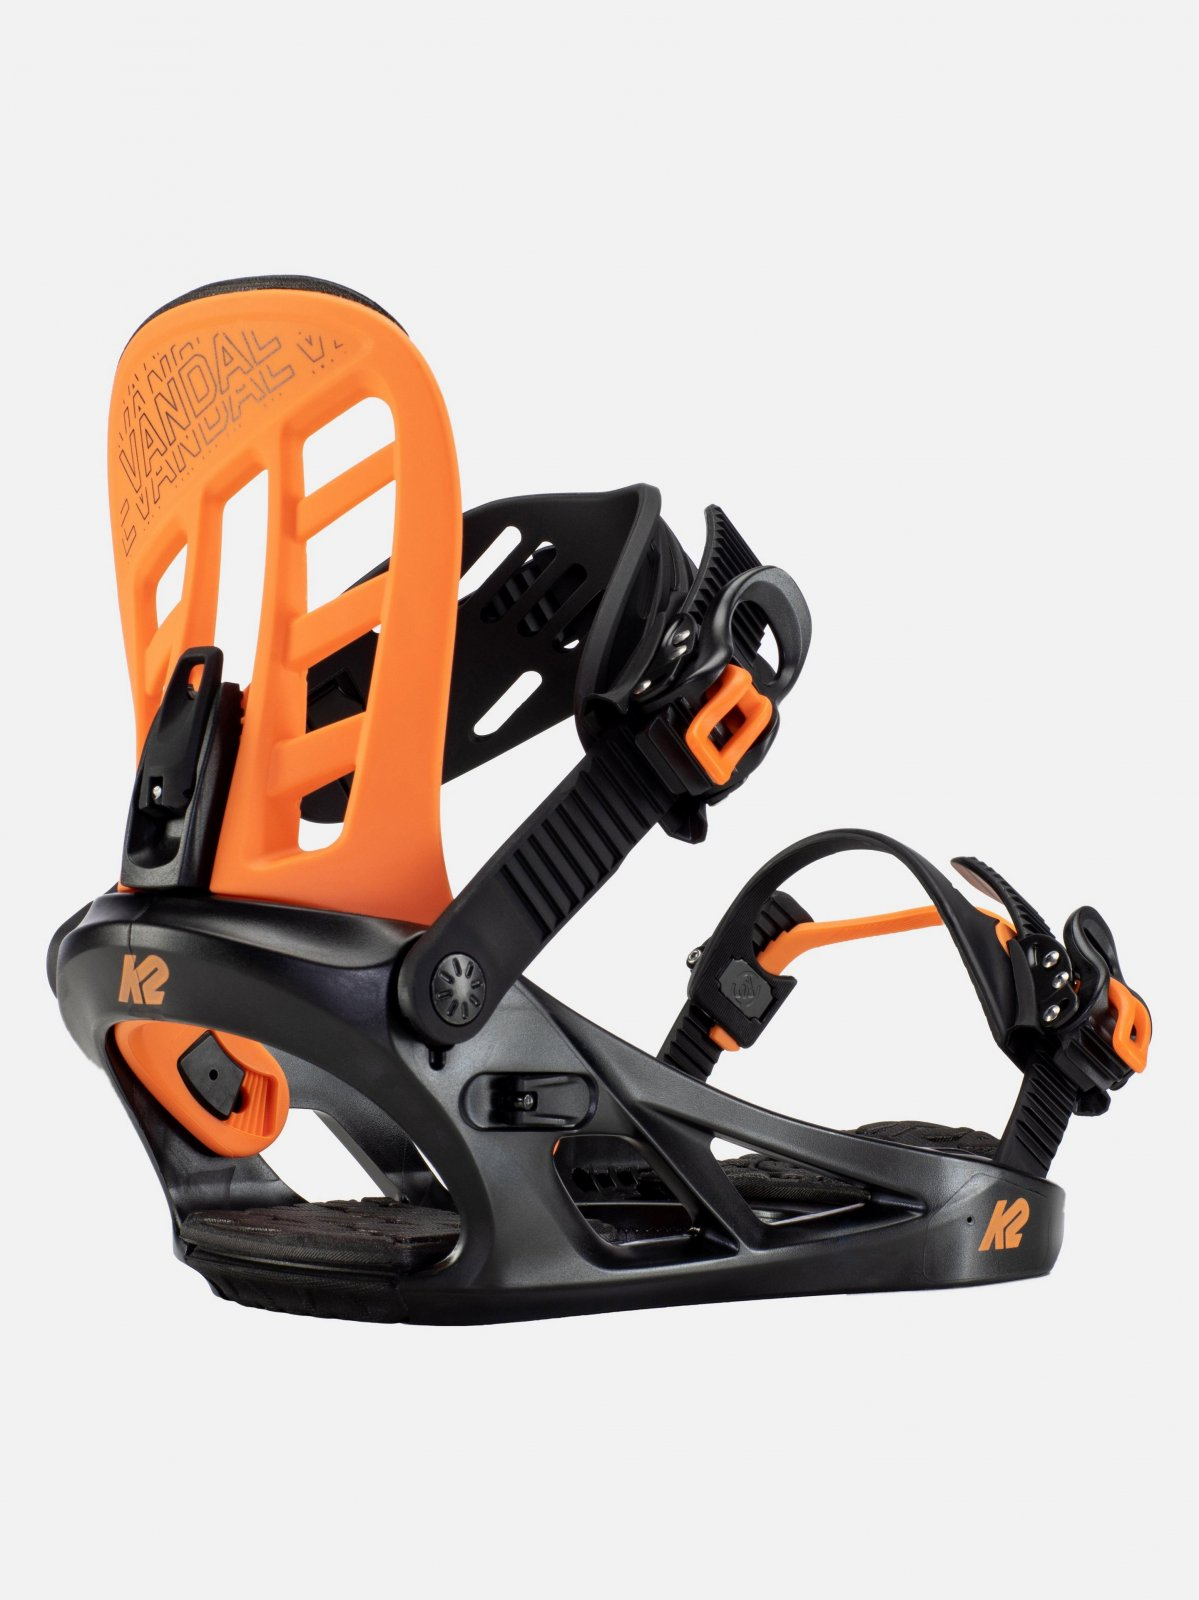 2021 K2 Vandal Youth Snowboard Binding